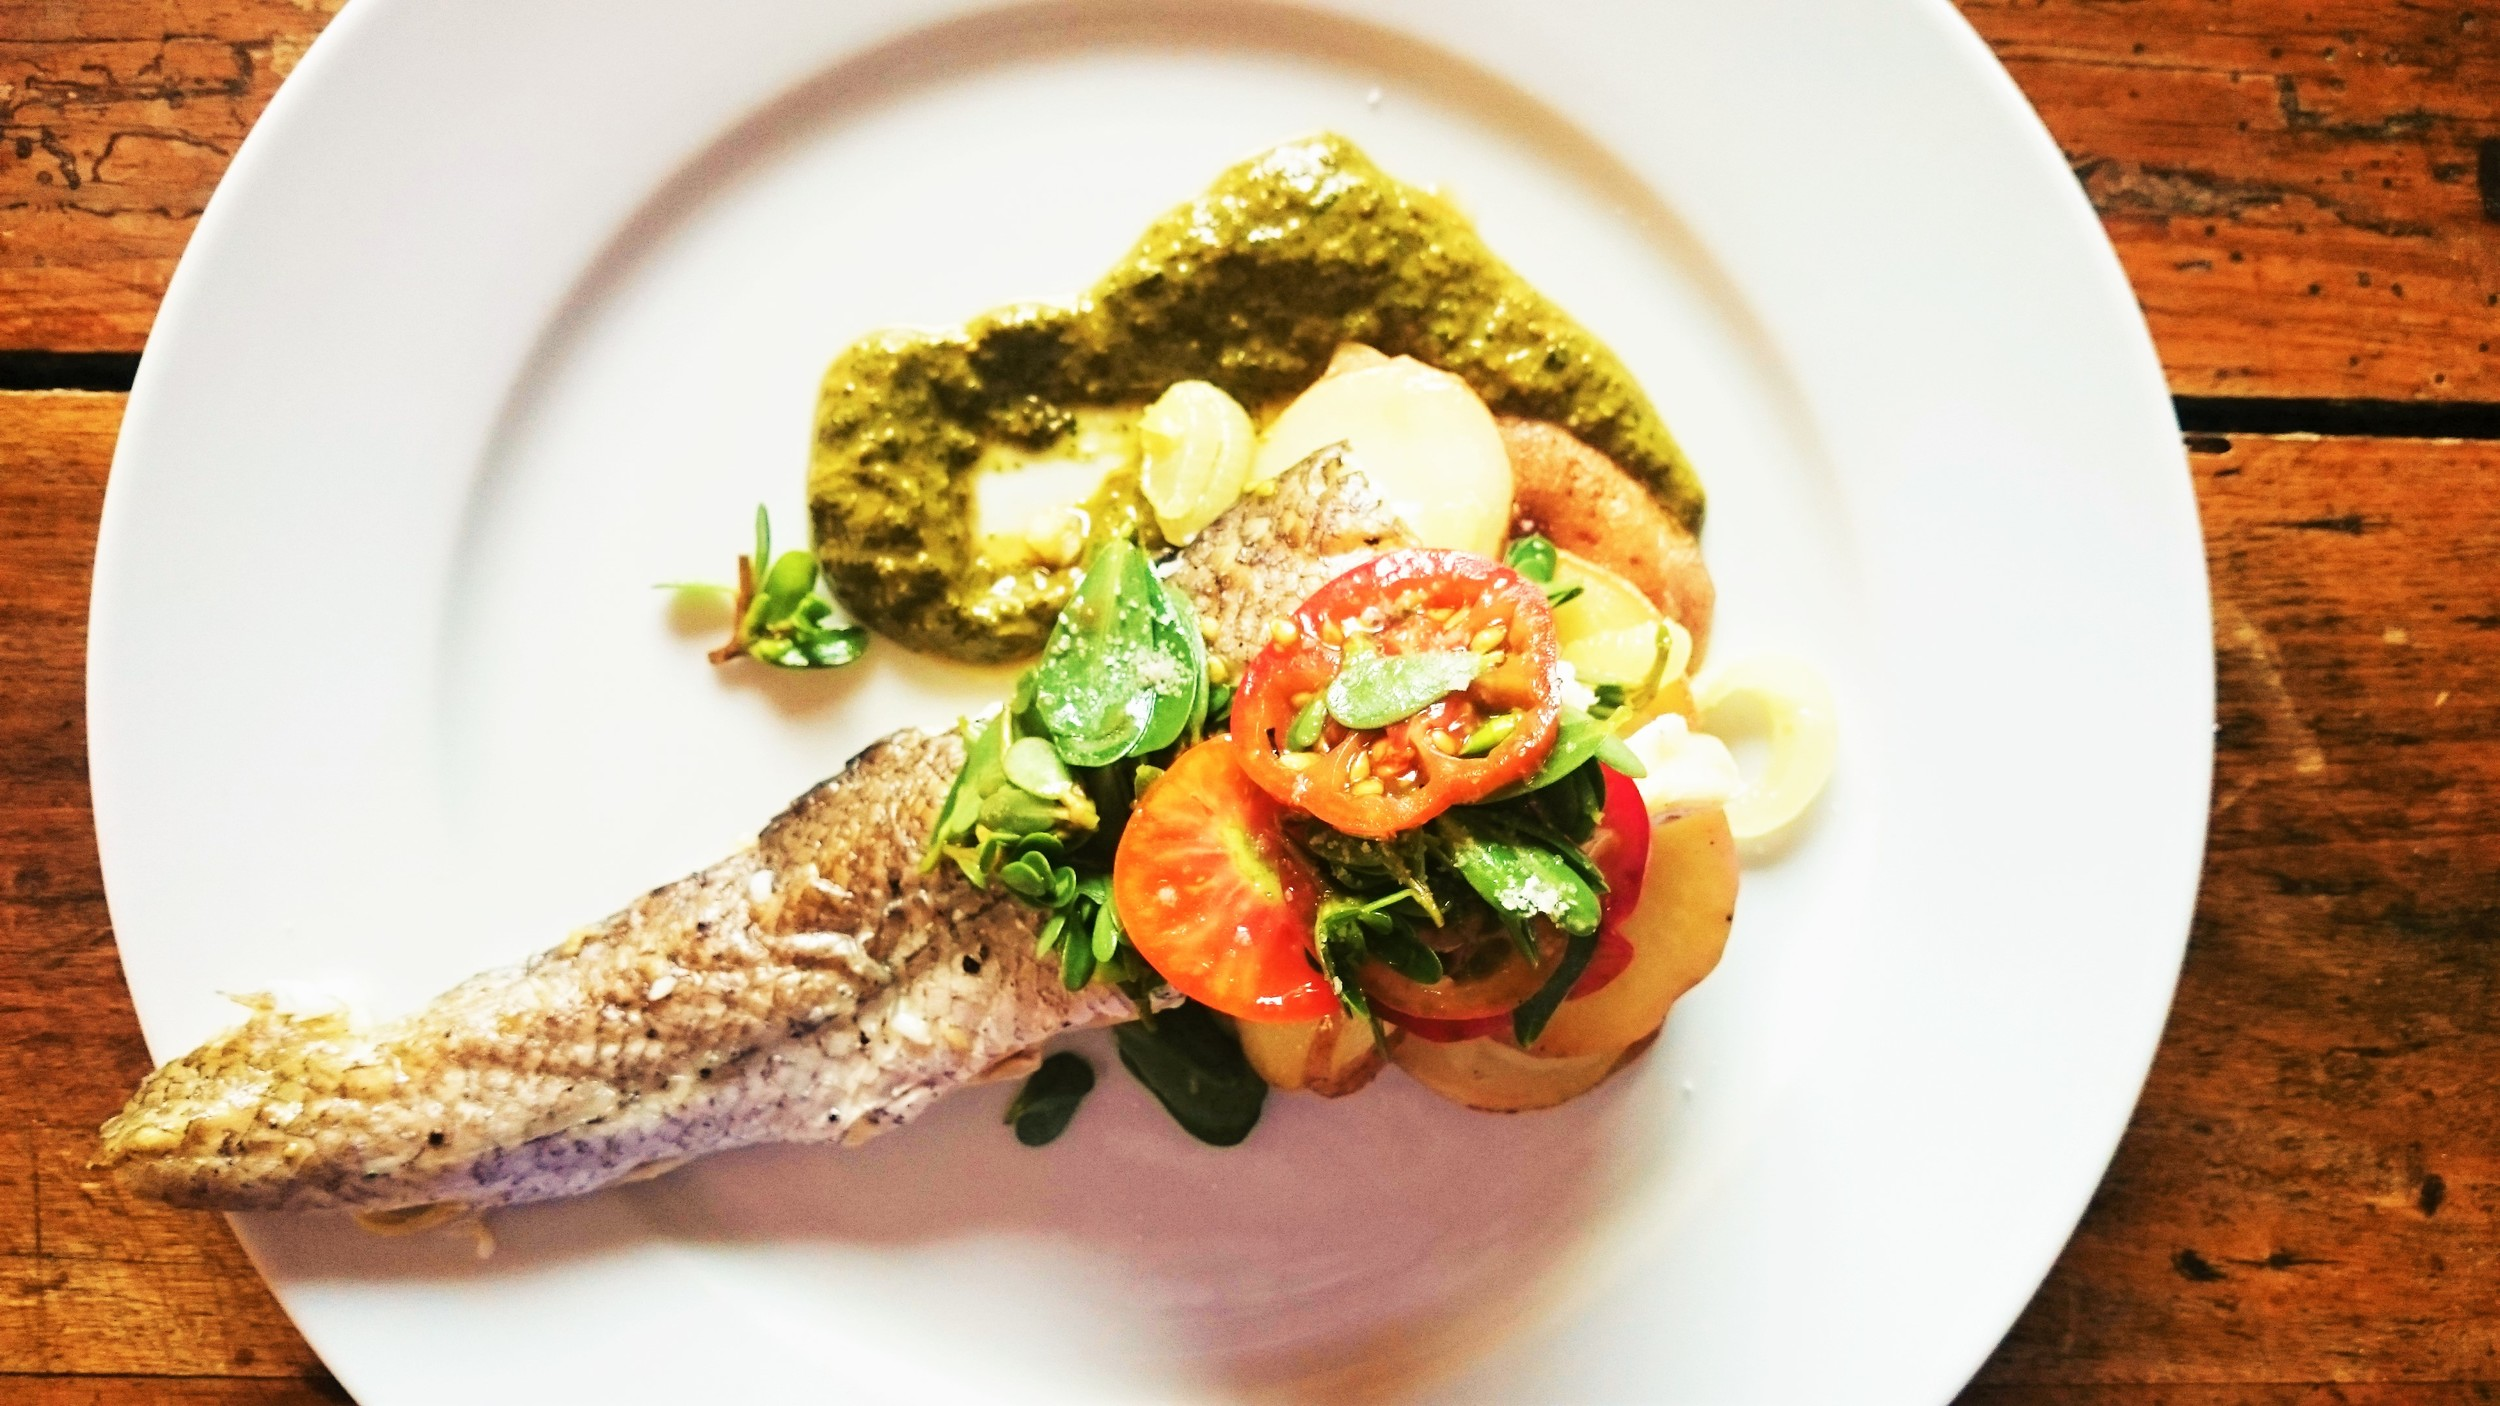 LUNCHTIME | Baked crispy-skin Hake with garden chimichurri, potatoes au gratin and micro-salad of purslane and summer tomatoes with lemon vinaigrette [and every single ingredient came out of the garden at the house and yes, the fish is local as well, and yes, I cooked this].